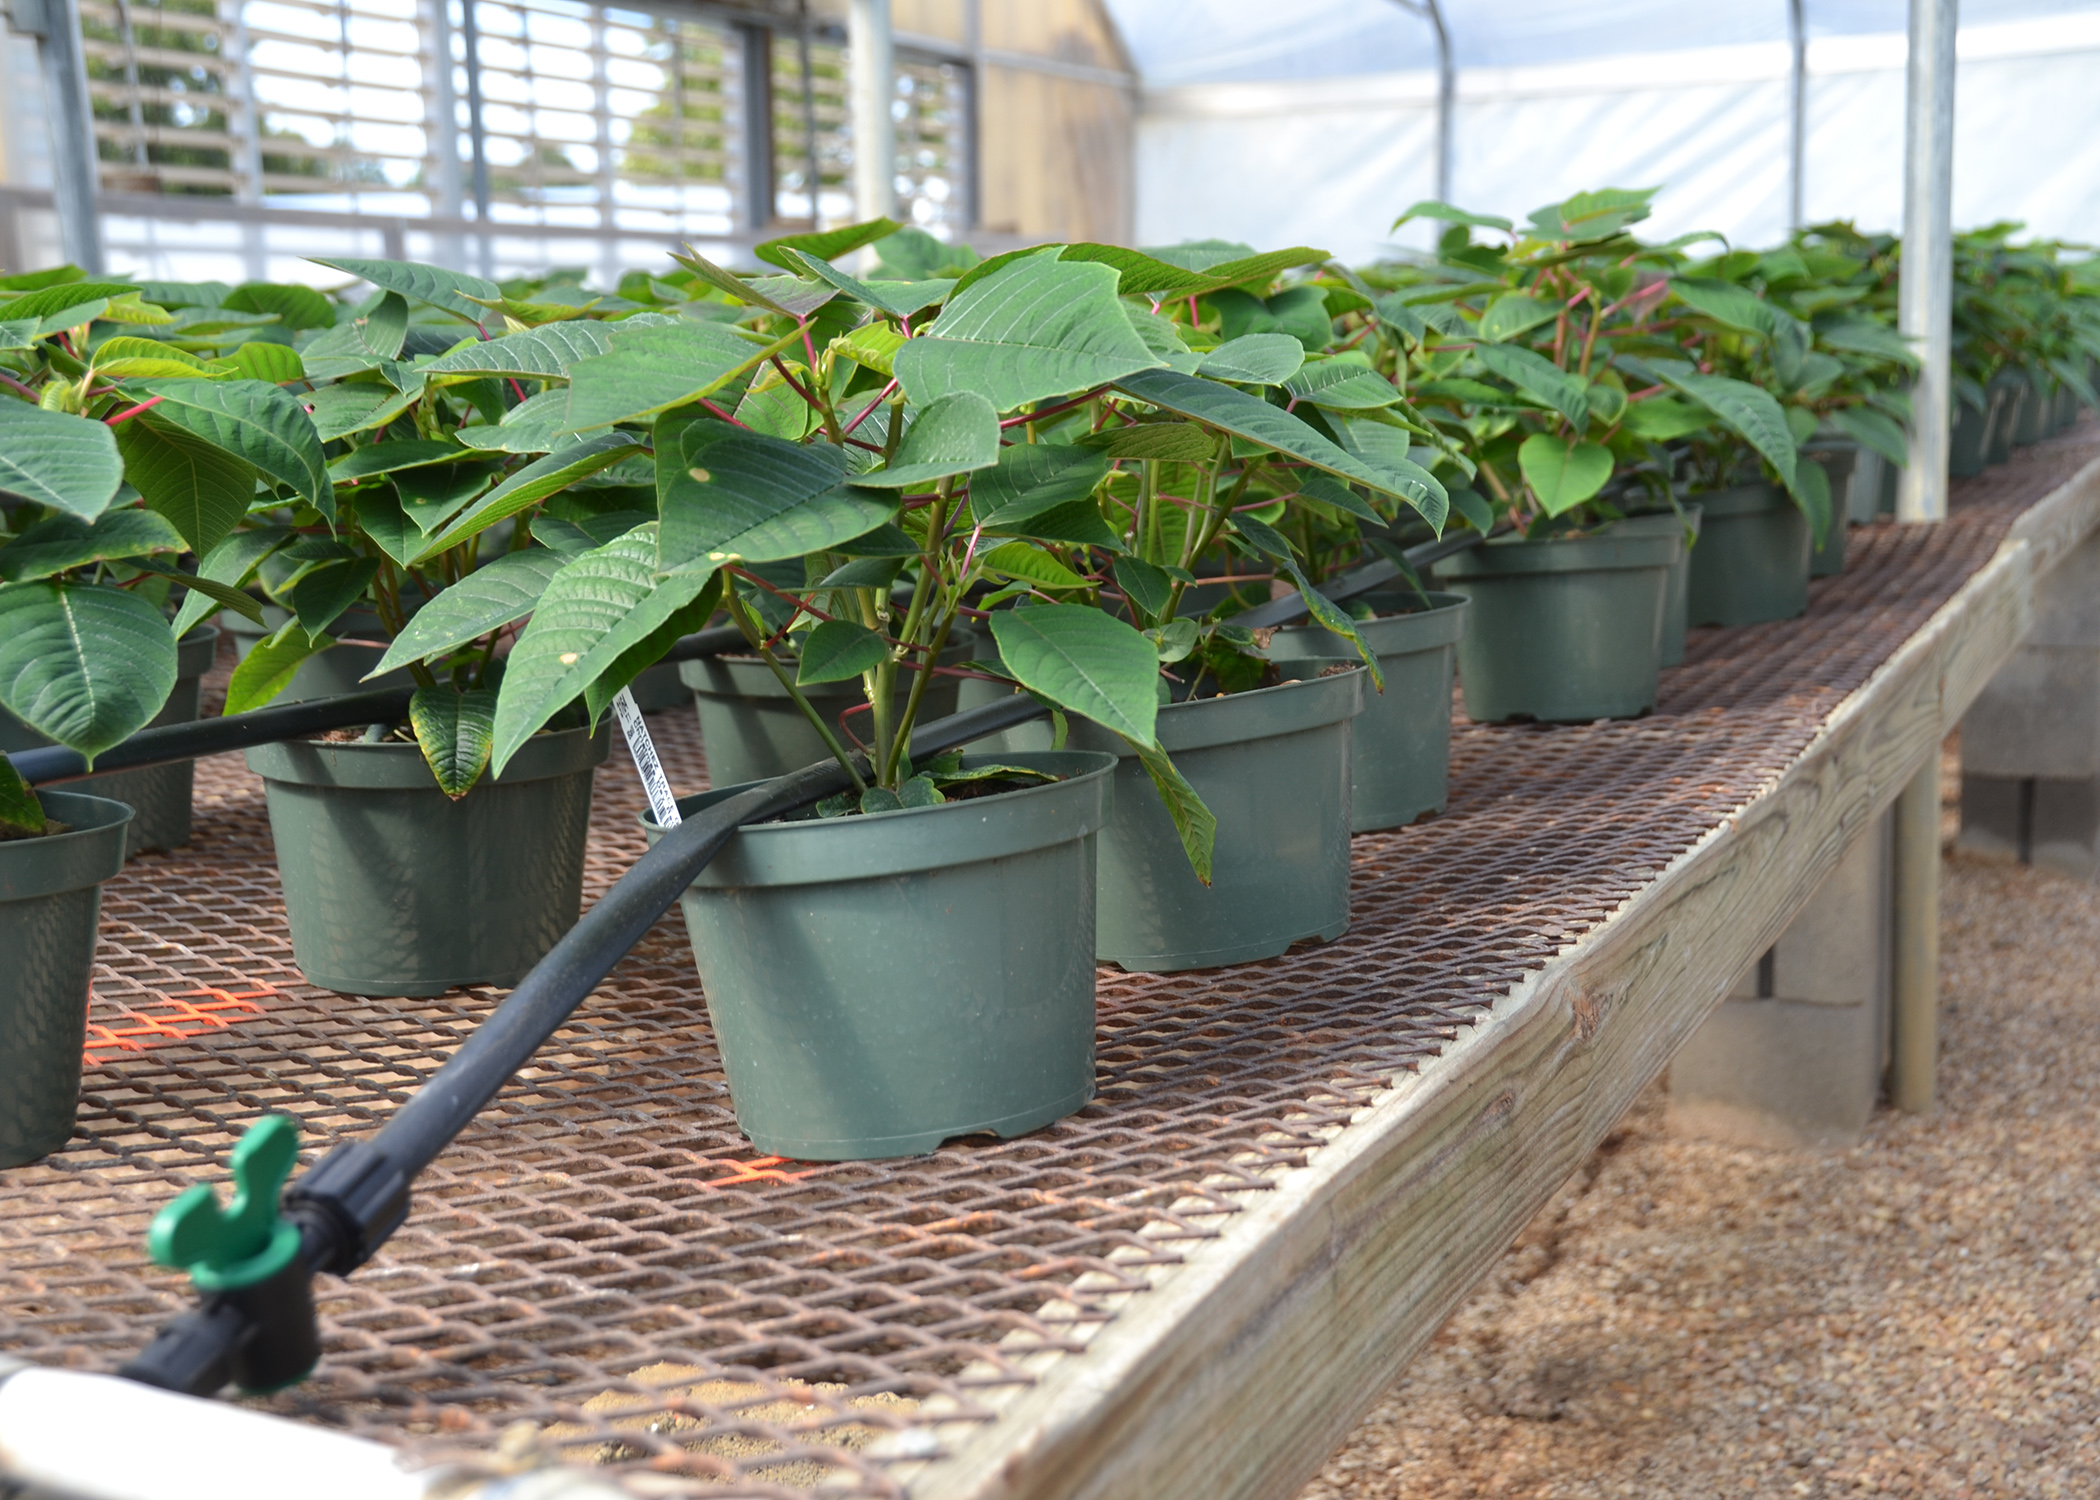 Poinsettias At Standing Pine Nursery In Raymond Get Consistent Water And Fertilizer Through A Modified Low